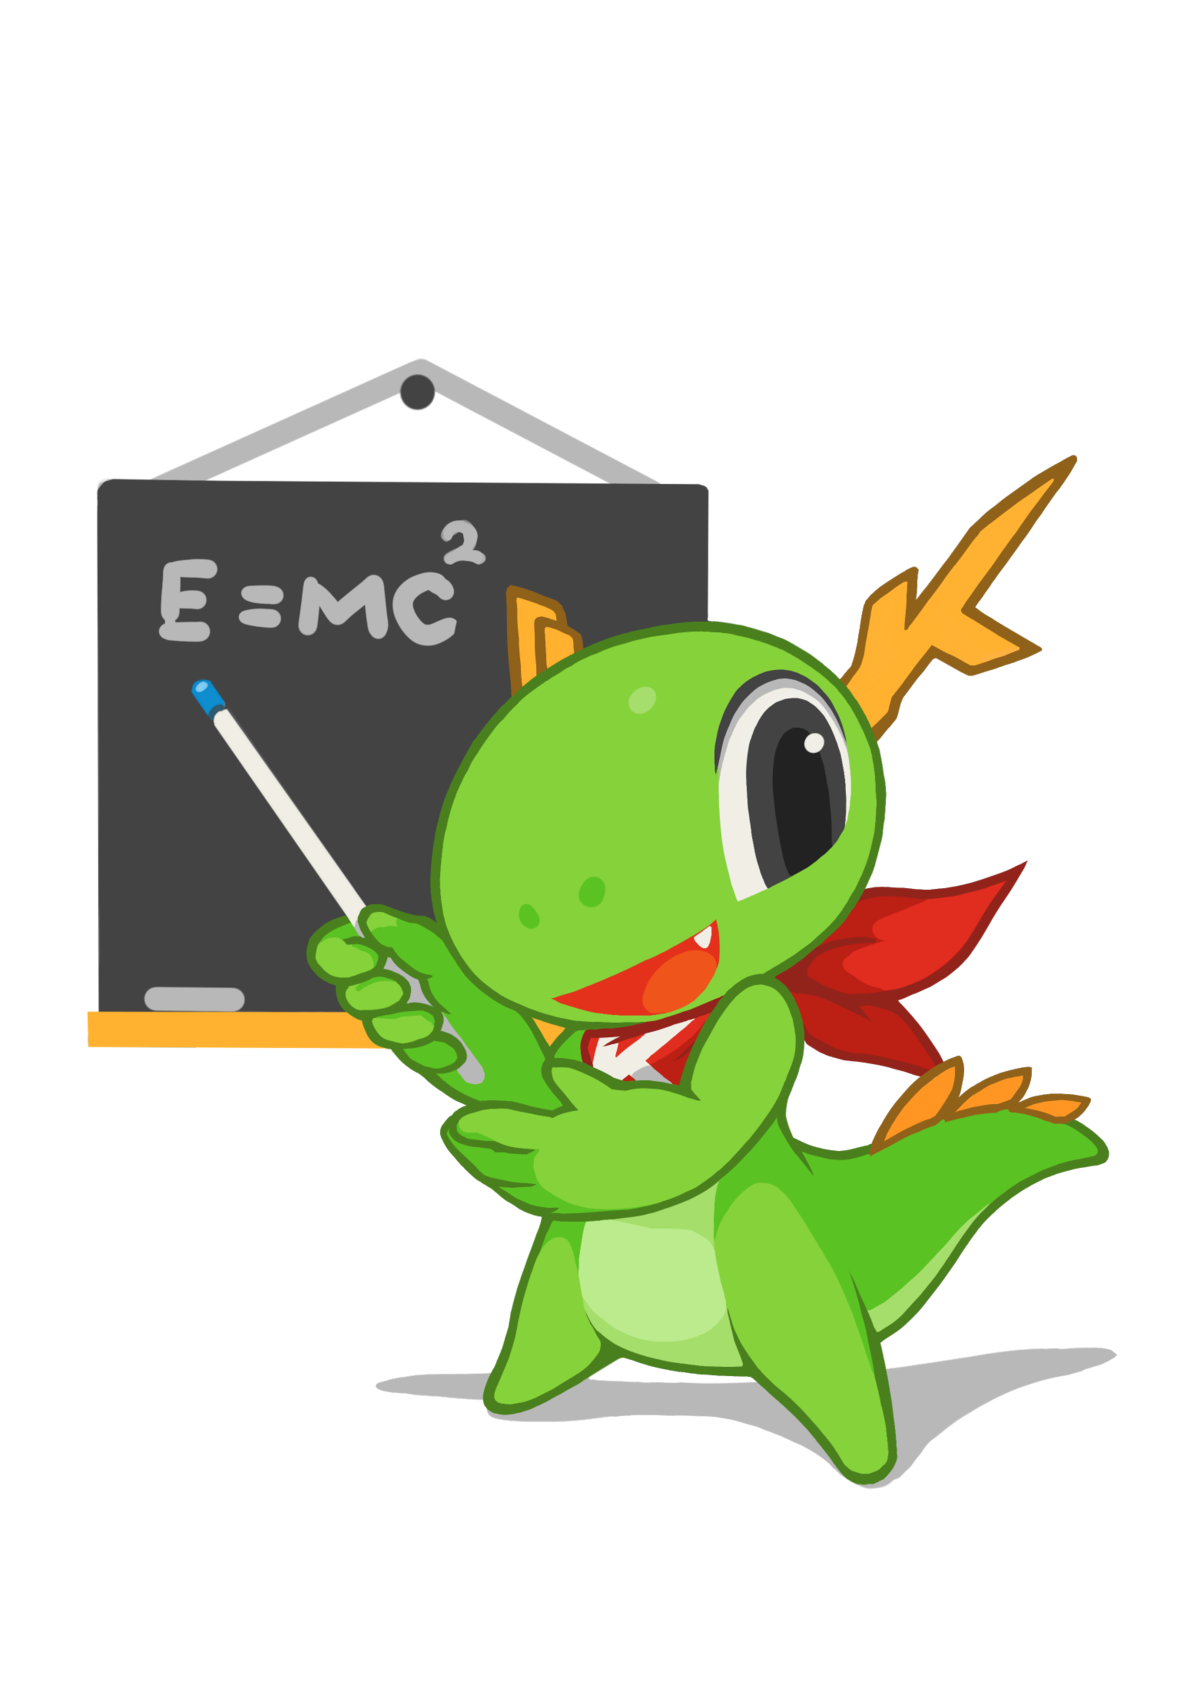 Px Kde Mascot Konqi For Presentation And Education Applications